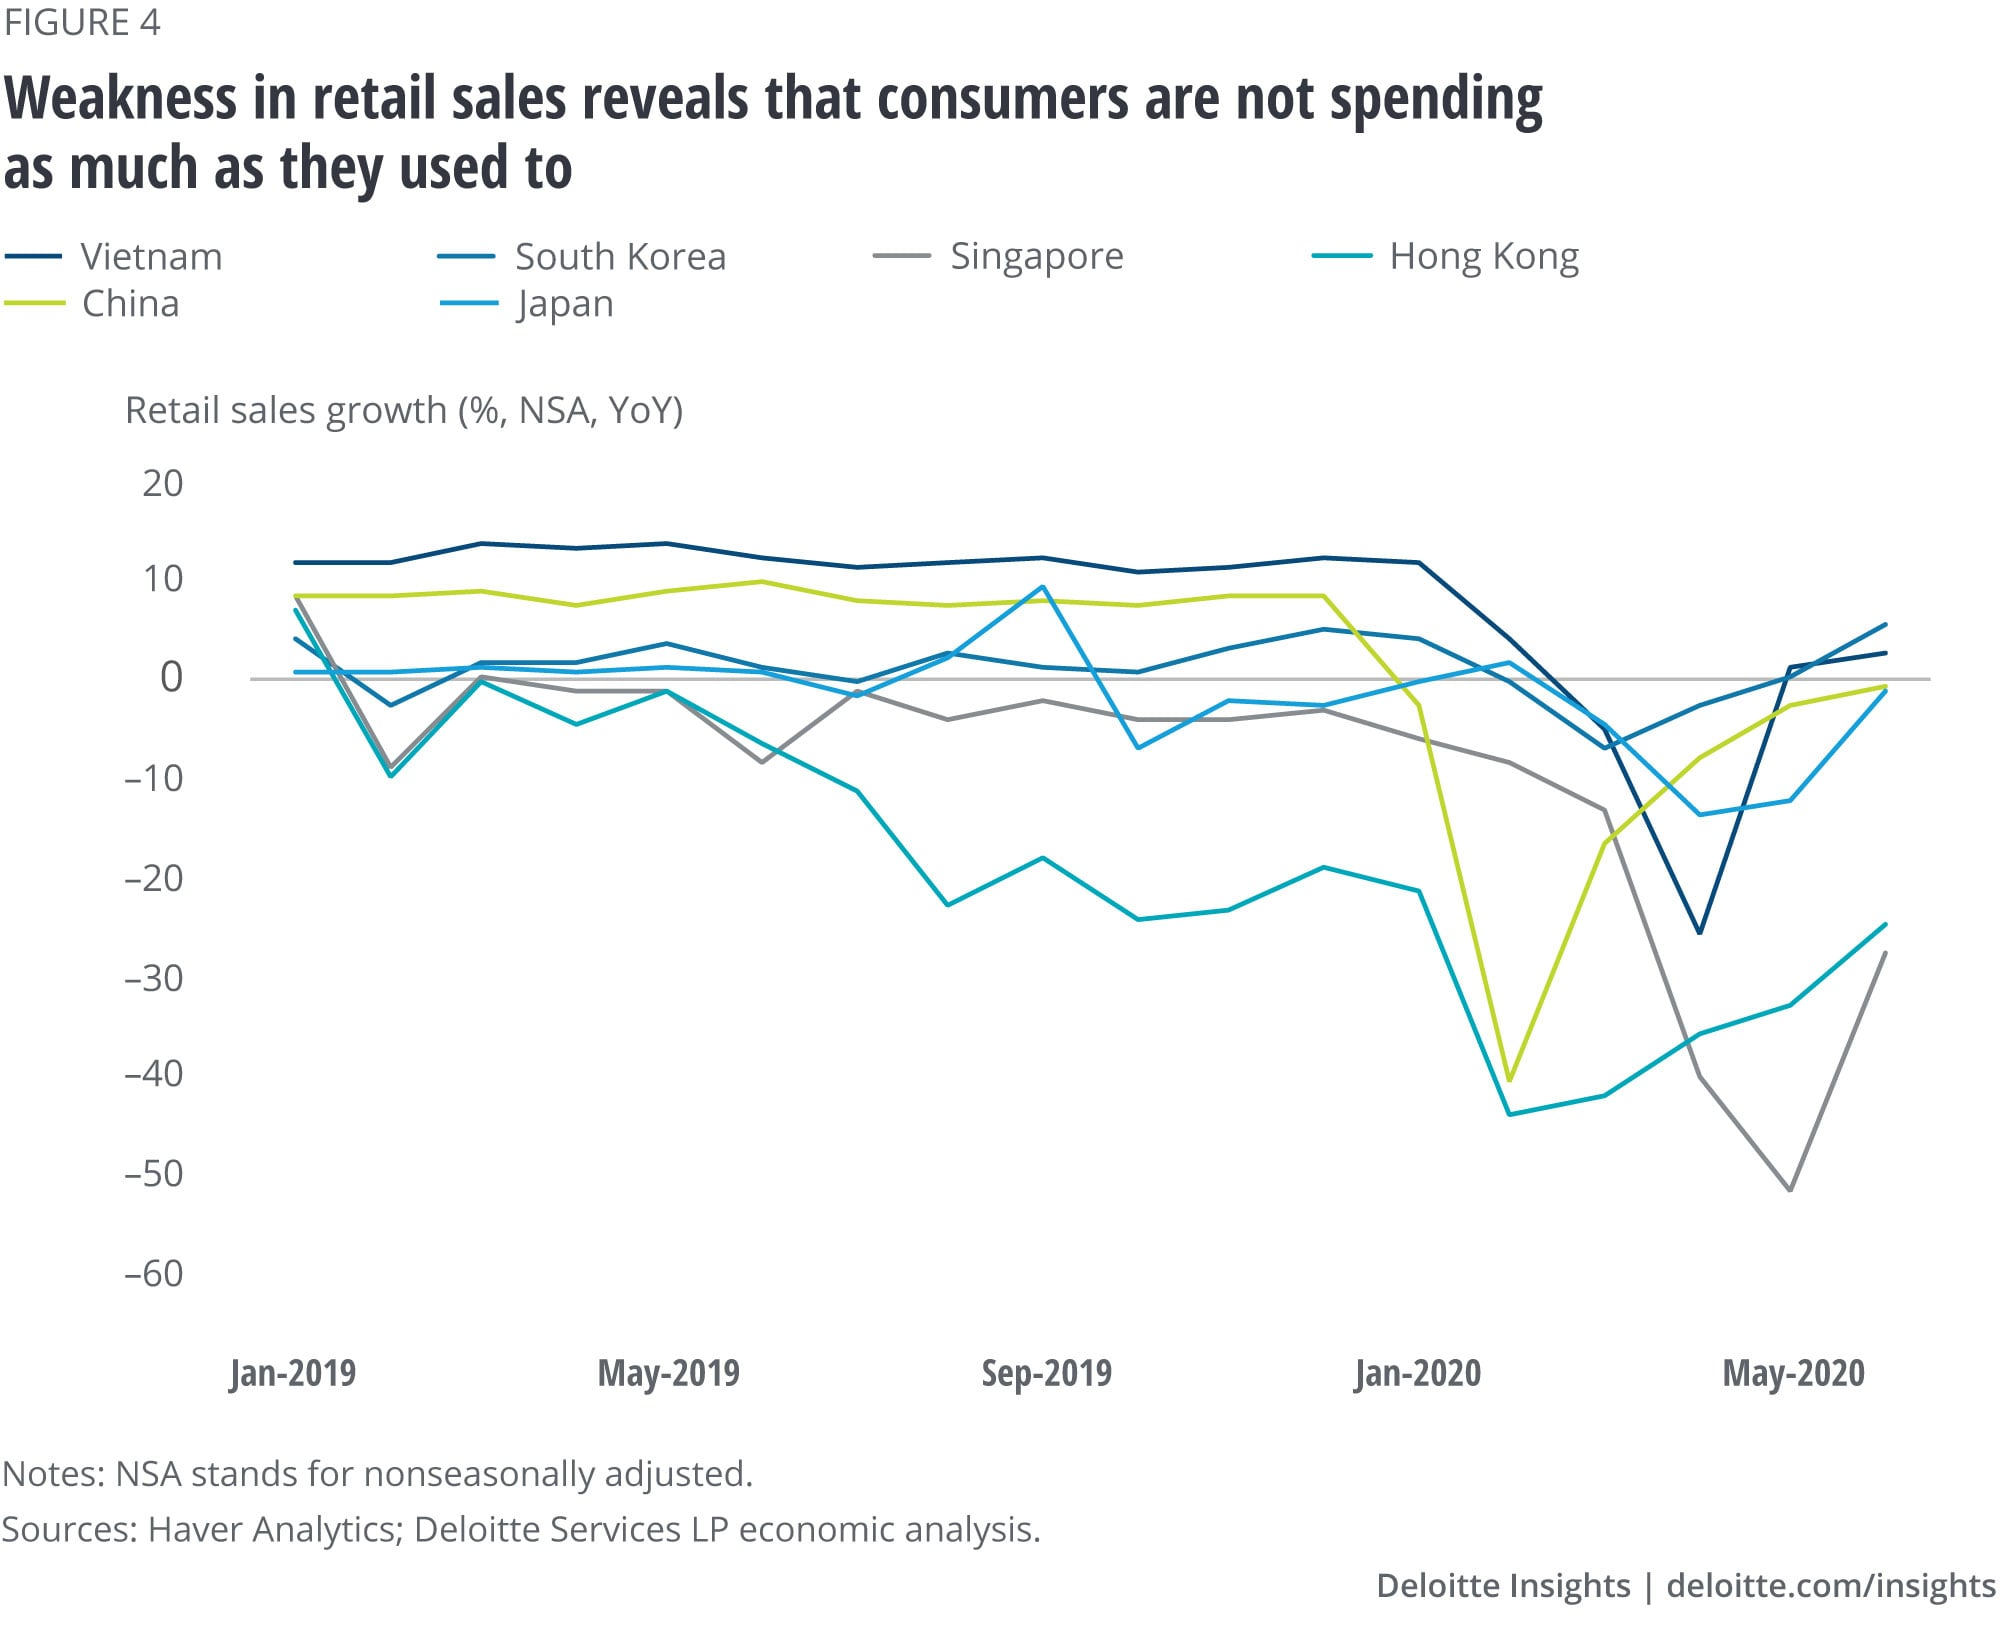 Weakness in retail sales reveal how consumers are not spending as much as they used to